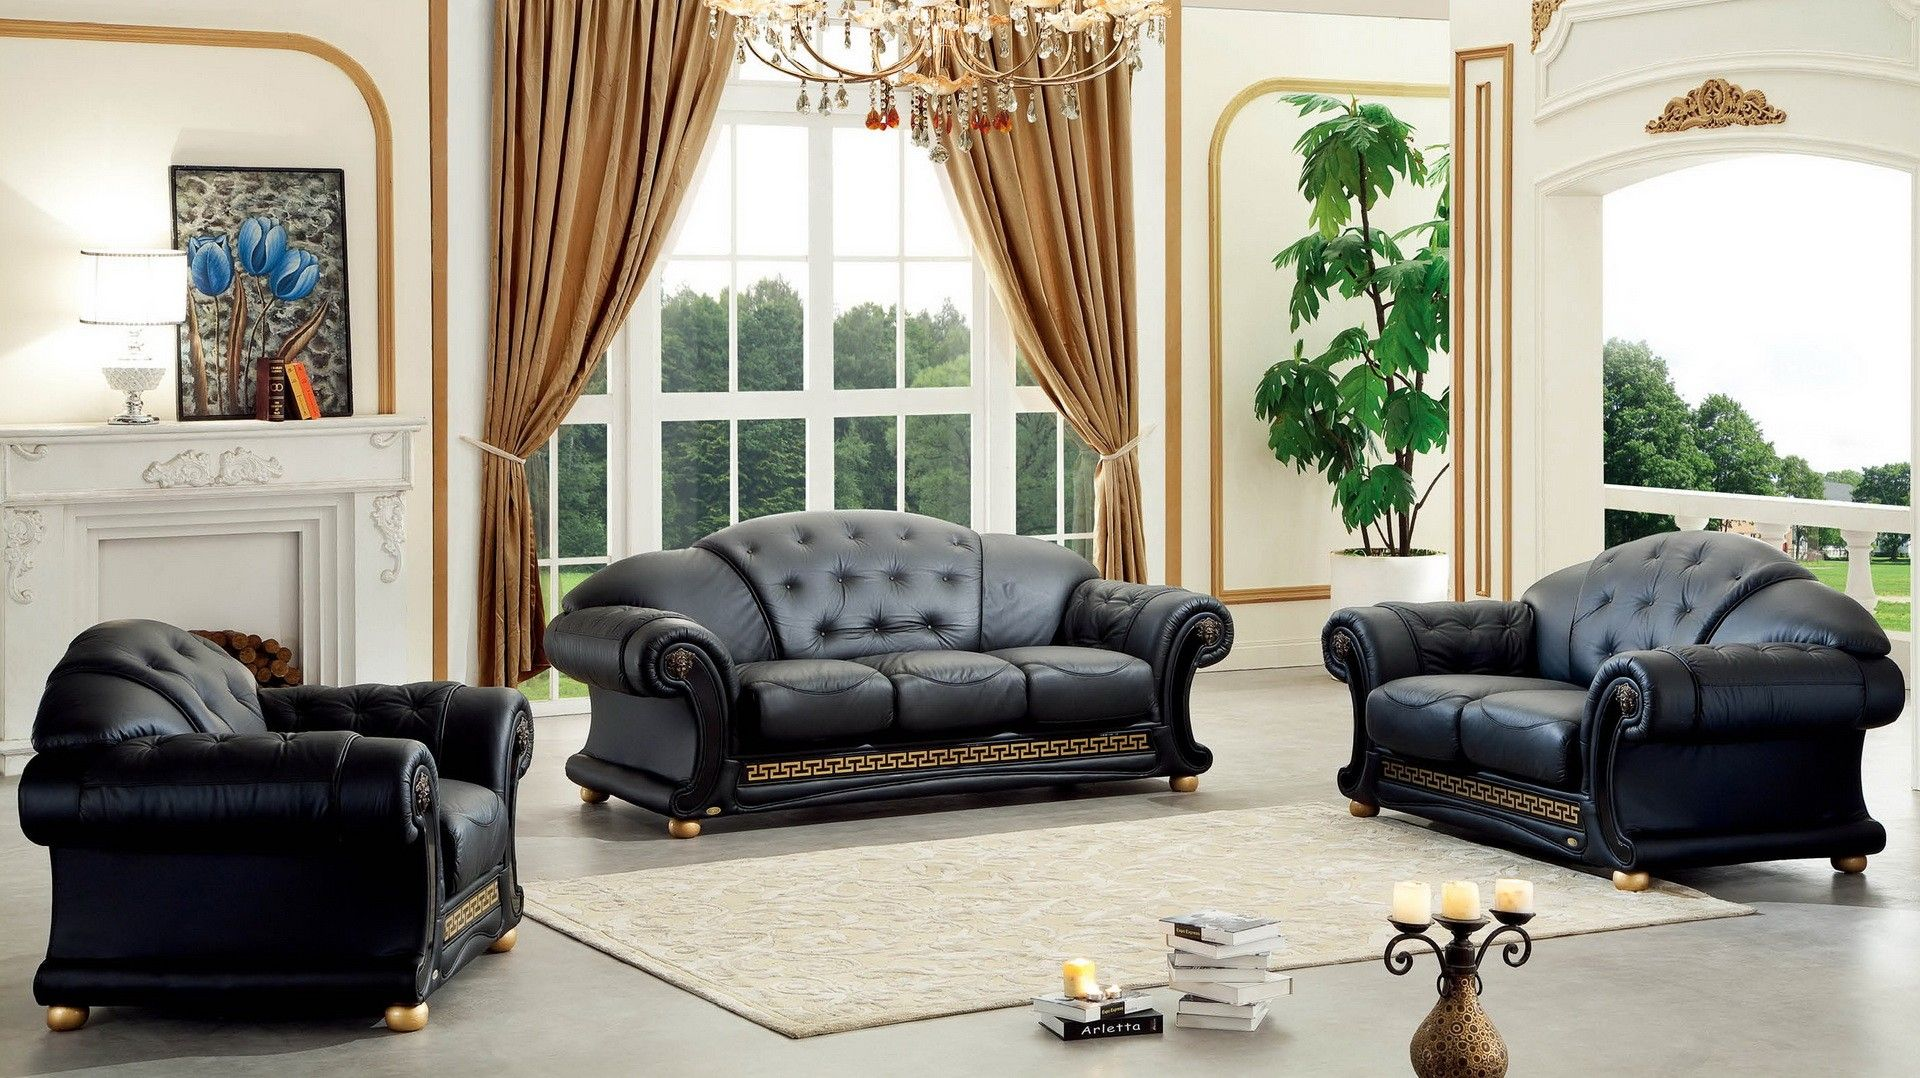 Esf Versace Sofa Loveseat Chair Pay Attention On Amazing Living Room Set In Art Deco Style Living Room Sofa Set Living Room Leather Luxury Sofa Living Room